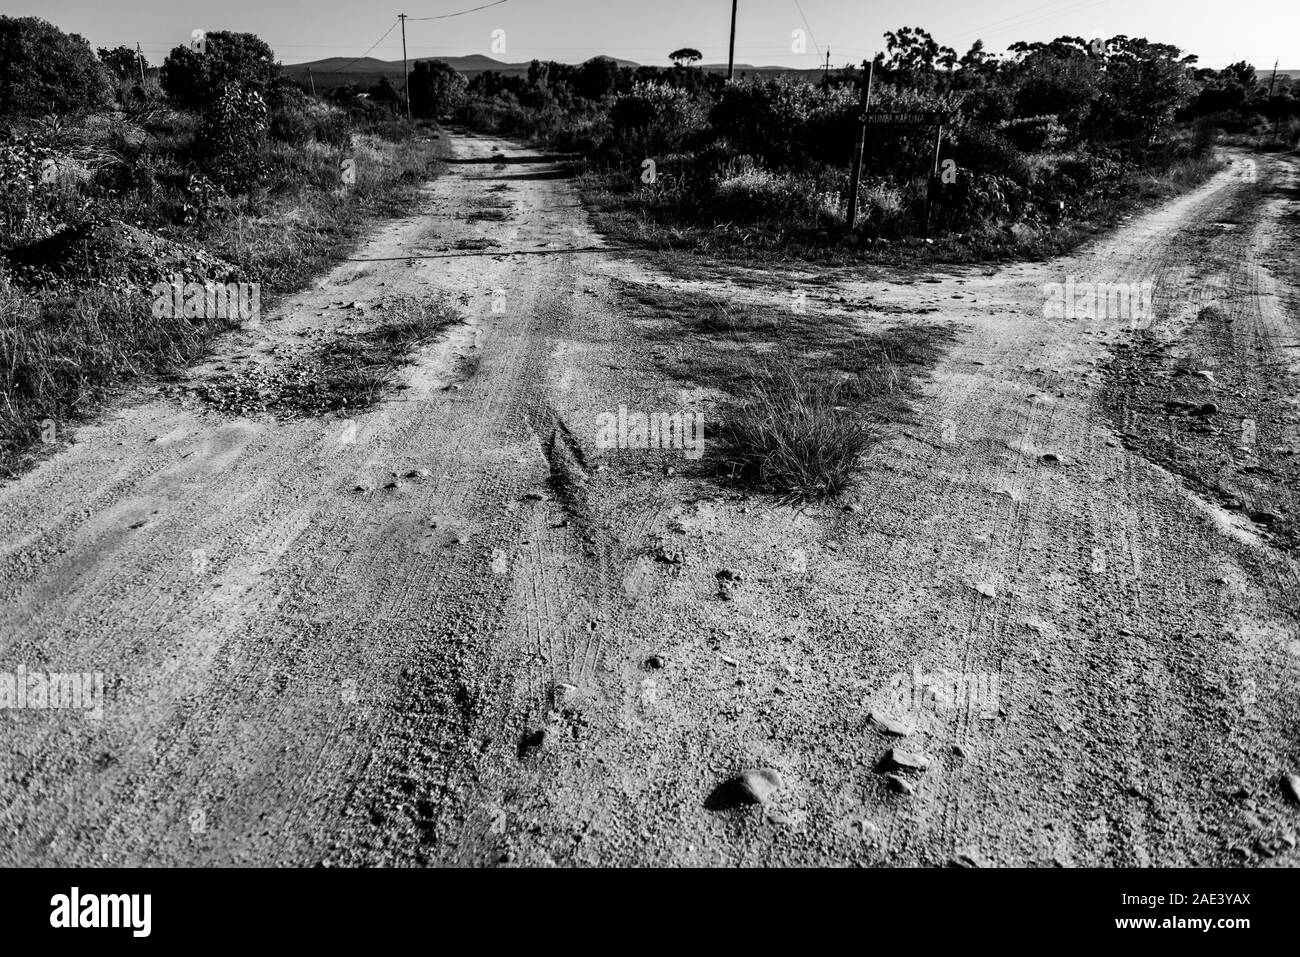 A farm road forks in the Overberg region near Stanford village in South Africa's Western Cape province Stock Photo